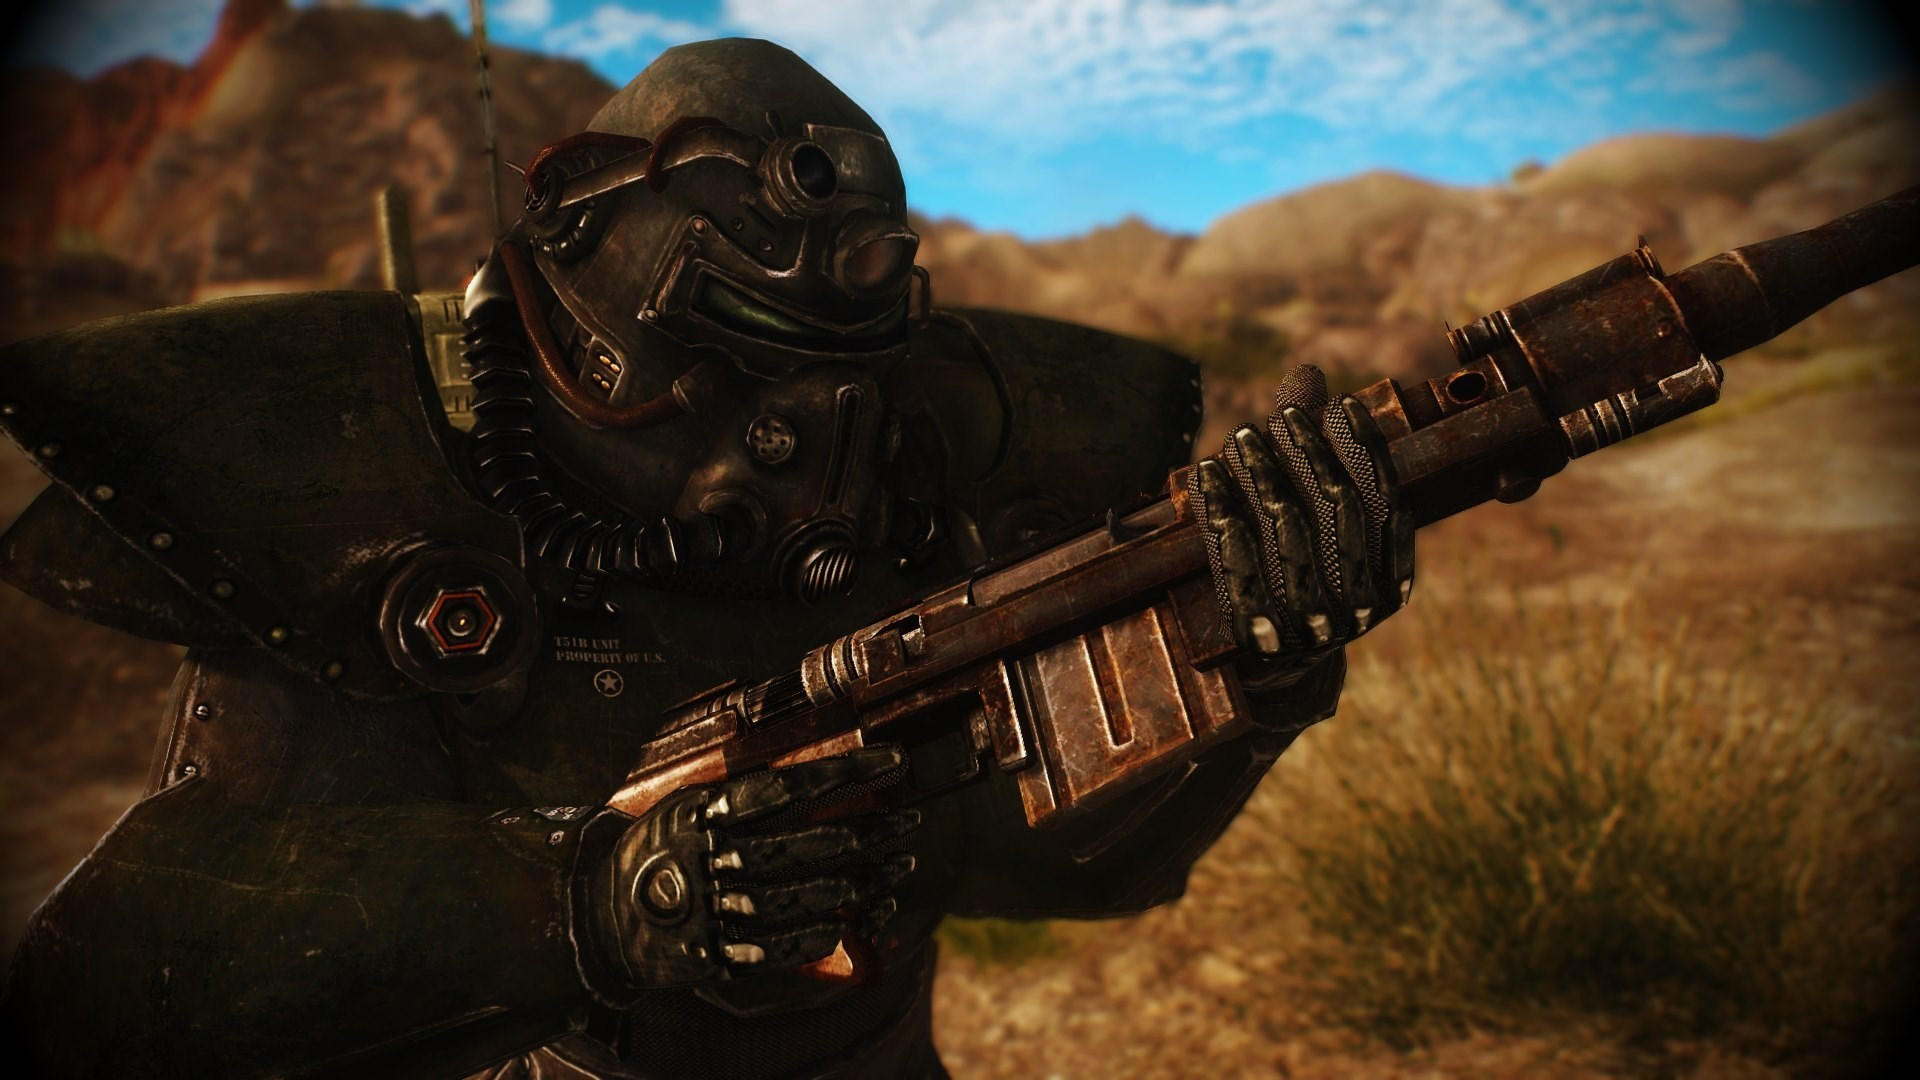 fallout new vegas wallpaper pack 1080p hd by Gregson Birds (2017-03-21